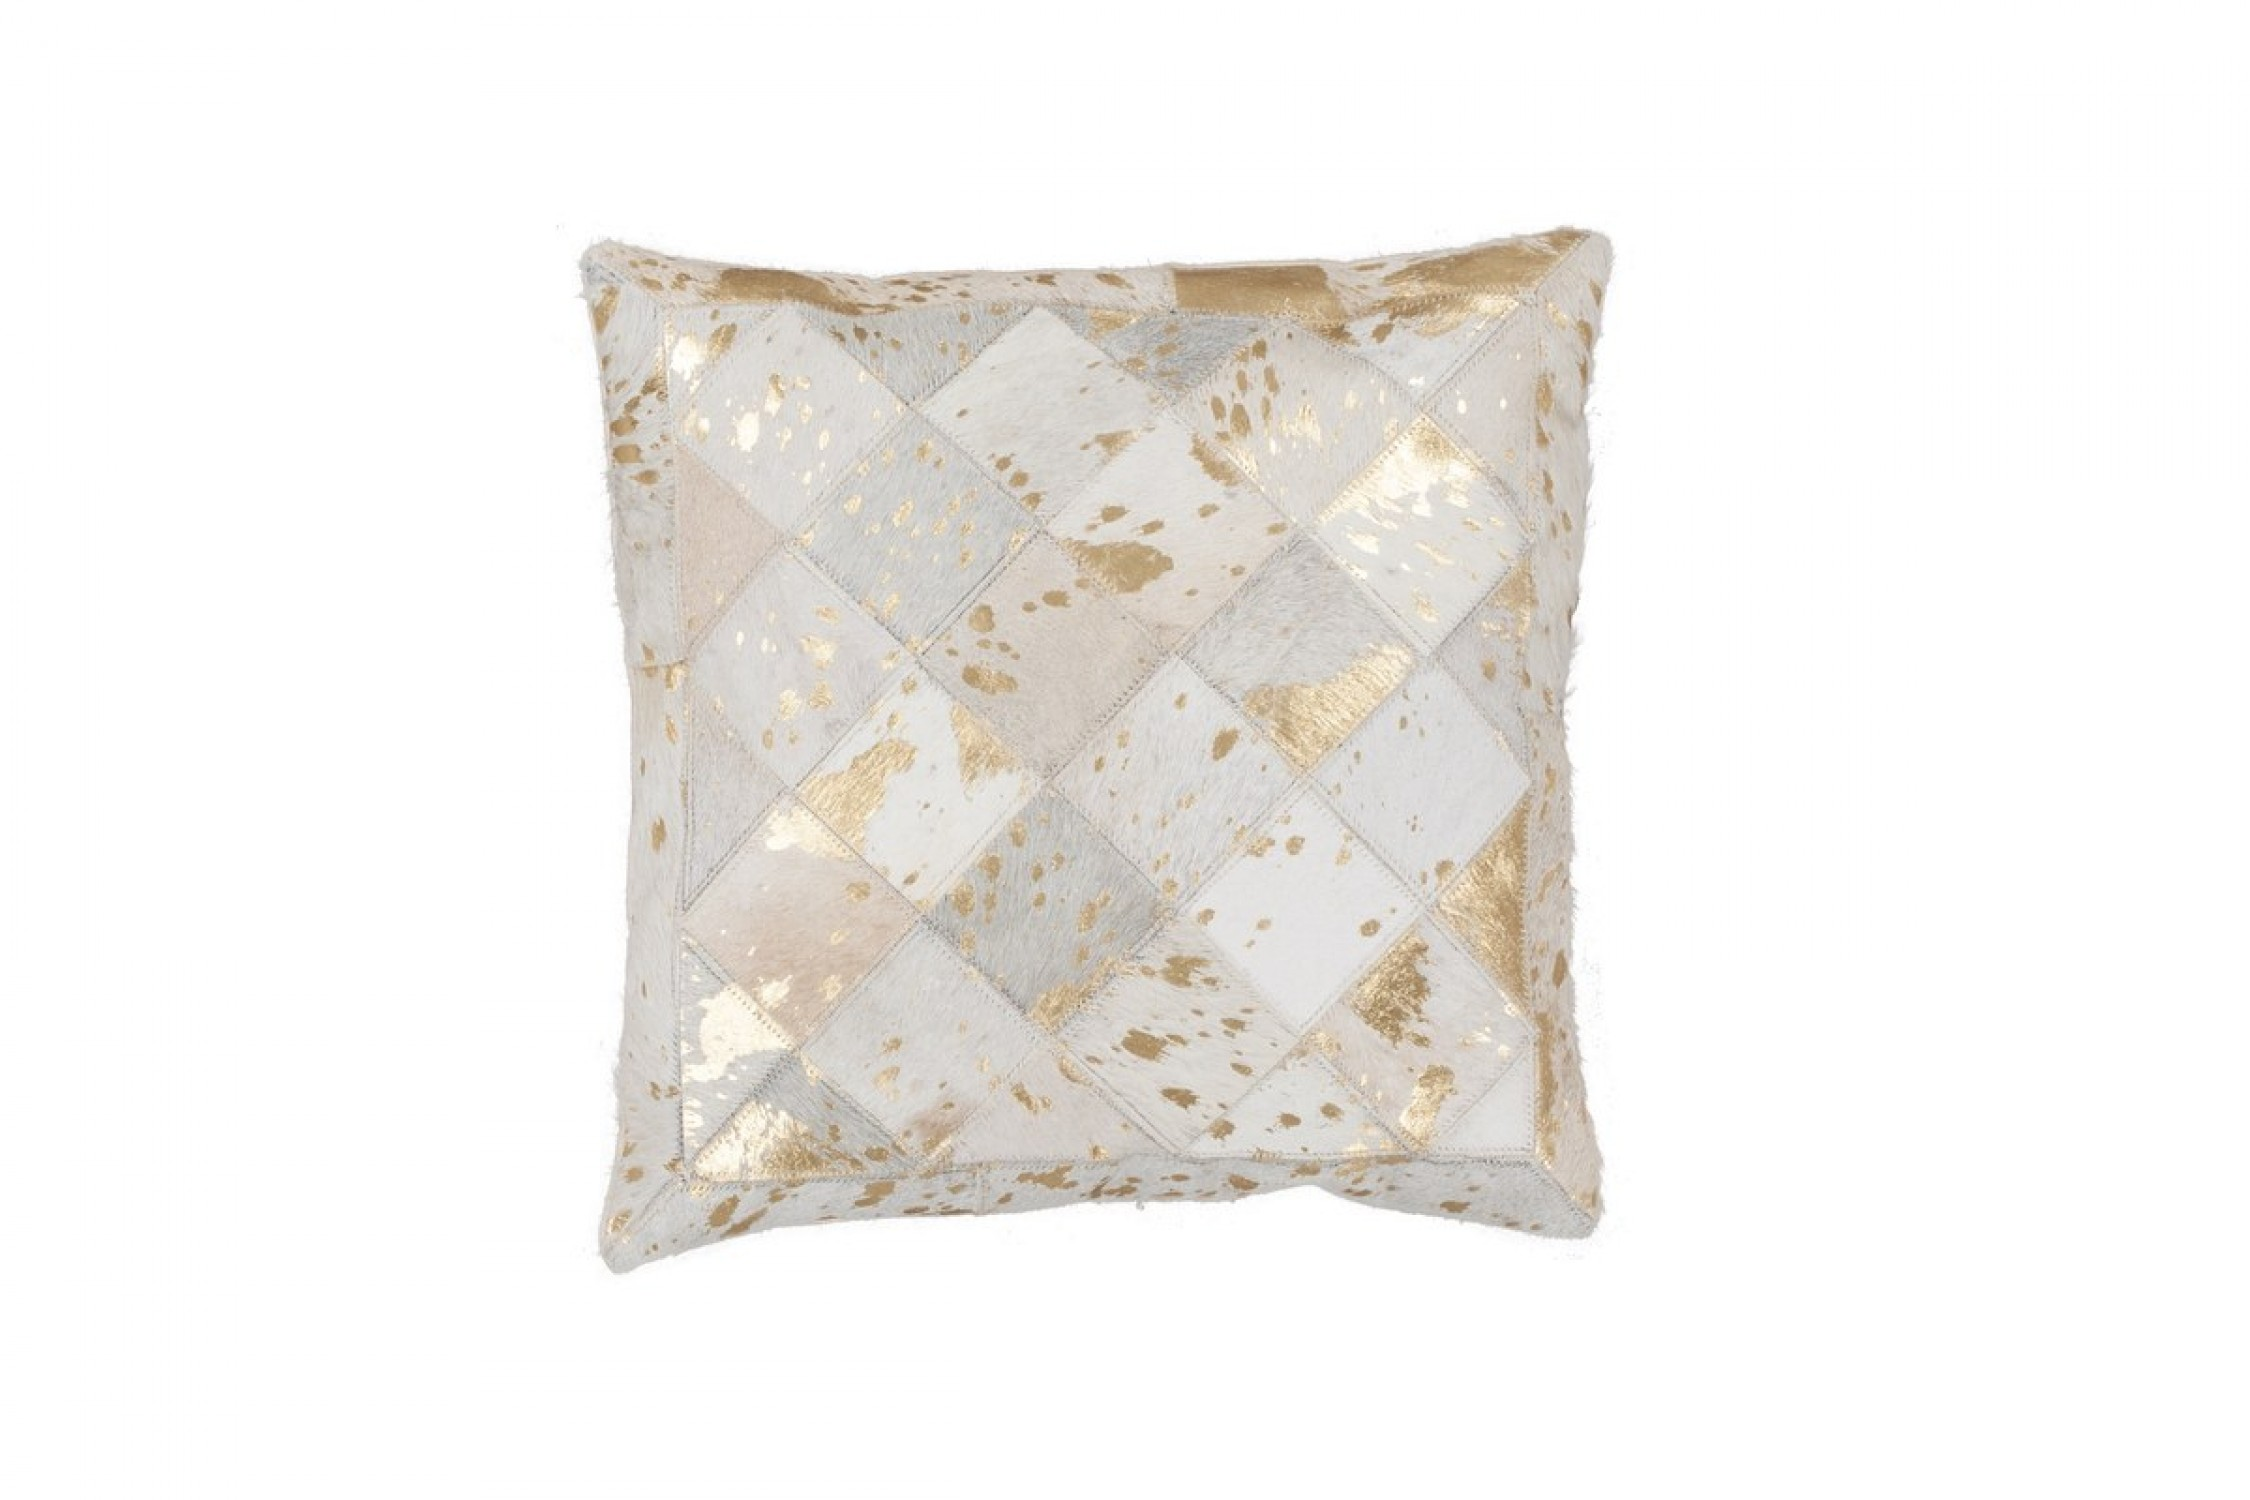 Lavish Pillow 210 Elfenbein / Gold